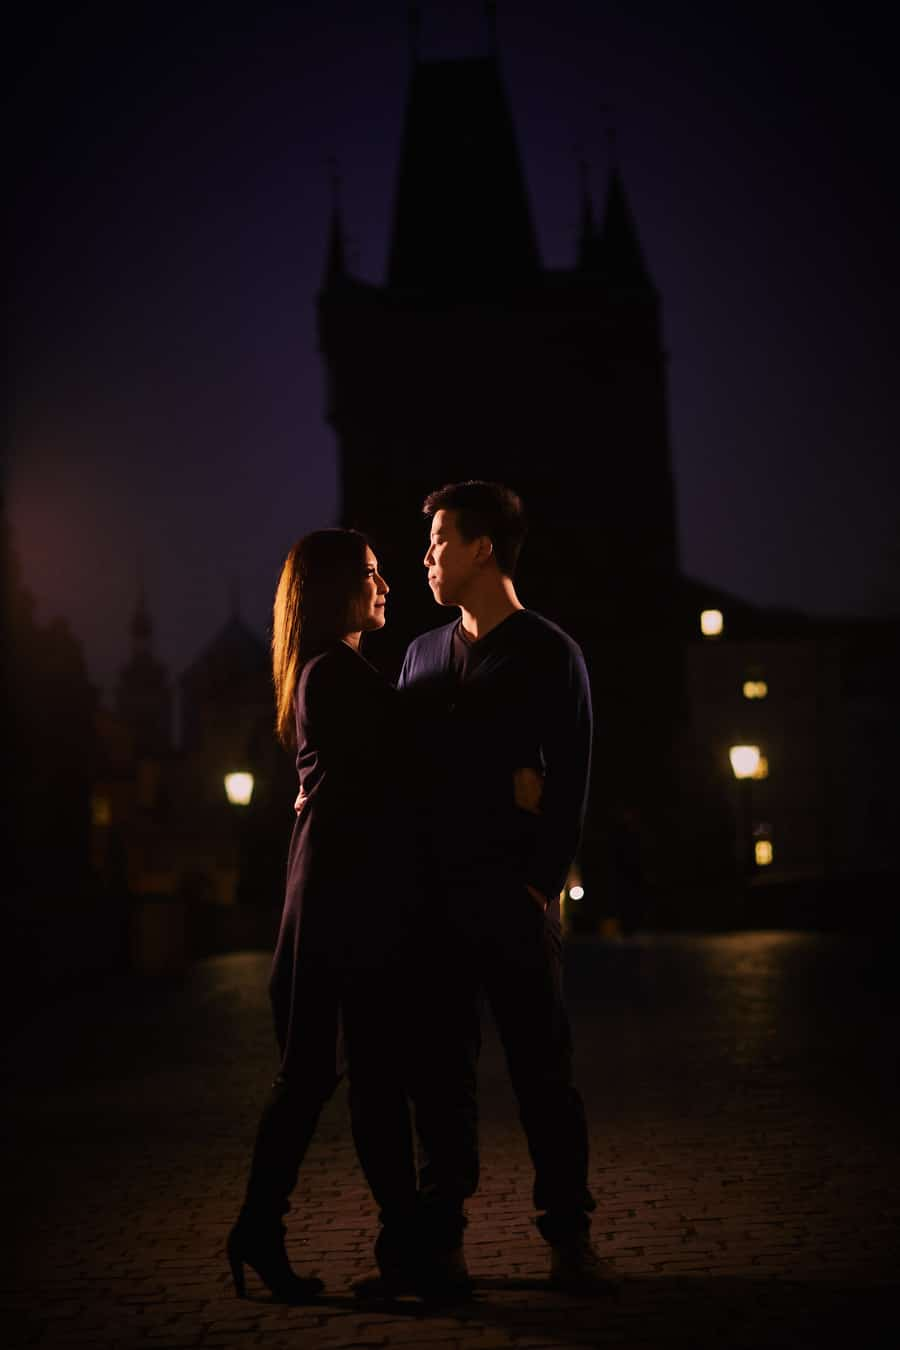 a night time lifestyle / fashion photography engagement session in Prague with A+D (USA)